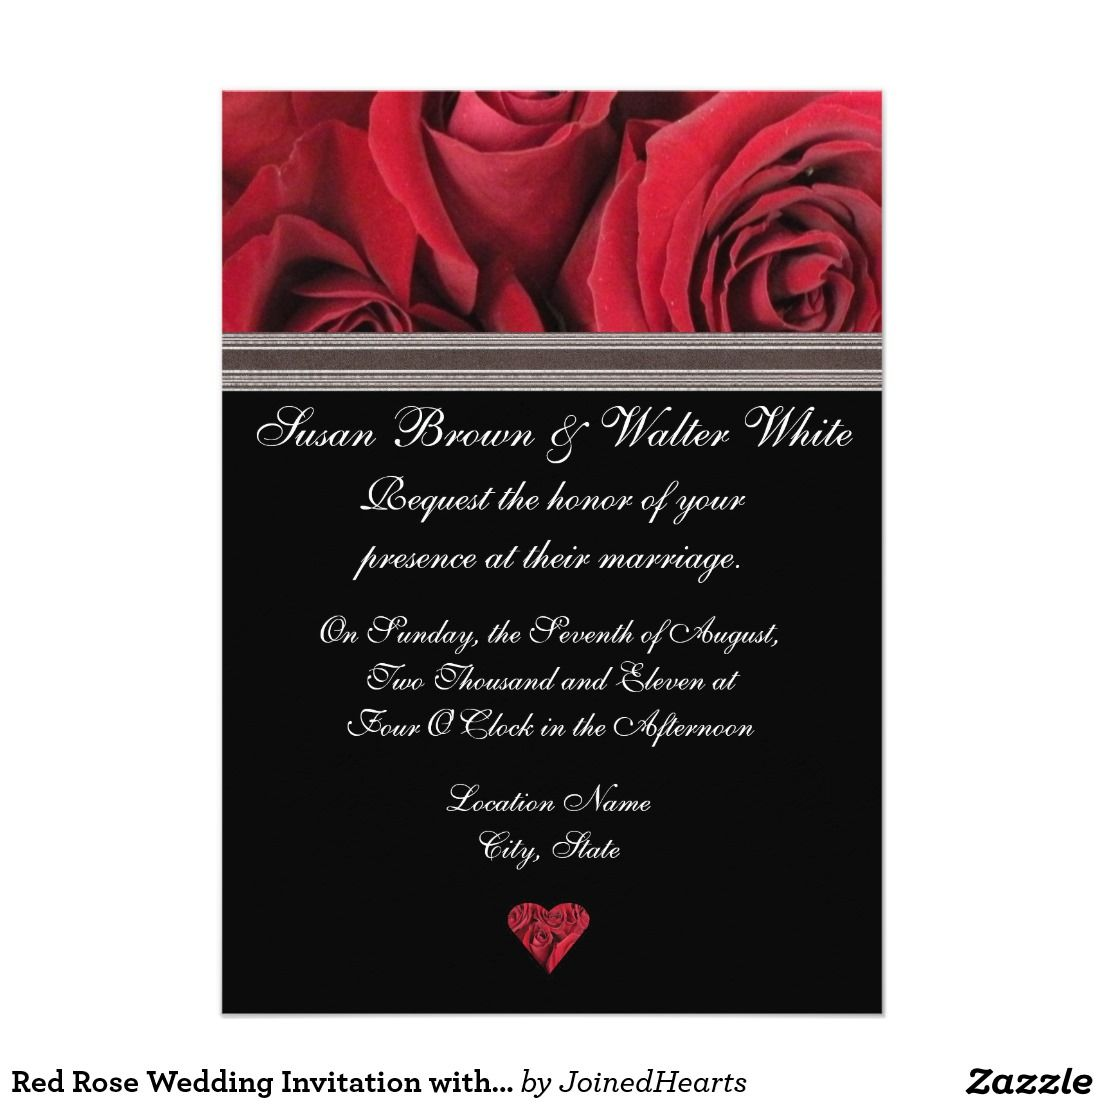 Red Rose Wedding Invitation with Gray Ribbon | Wedding Stuff ...